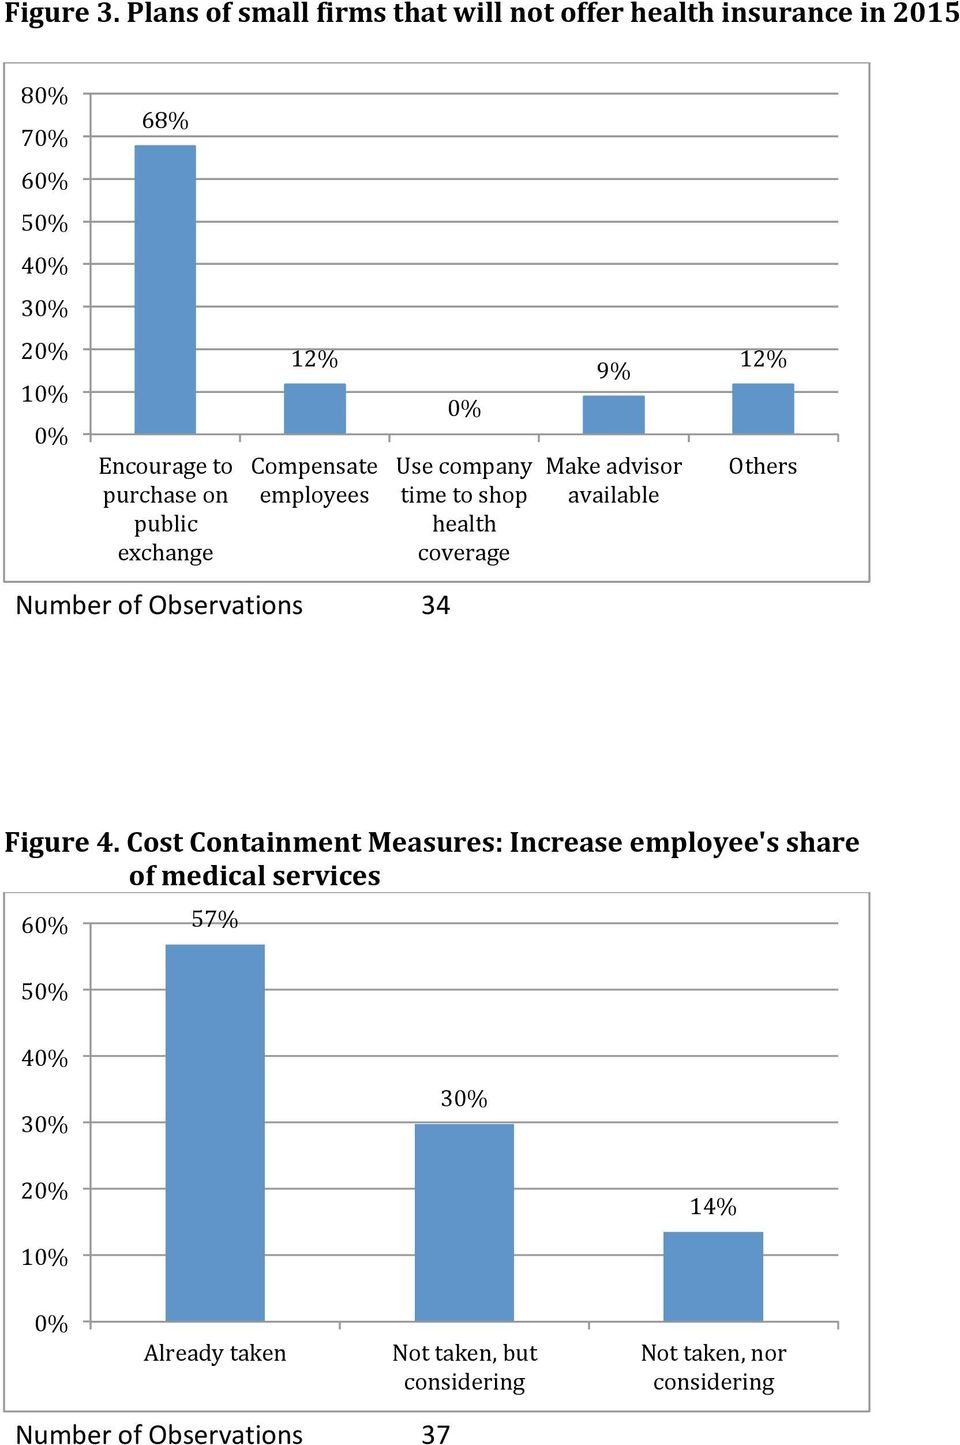 purchase on public exchange 12% Compensate employees Use company time to shop health coverage 9%